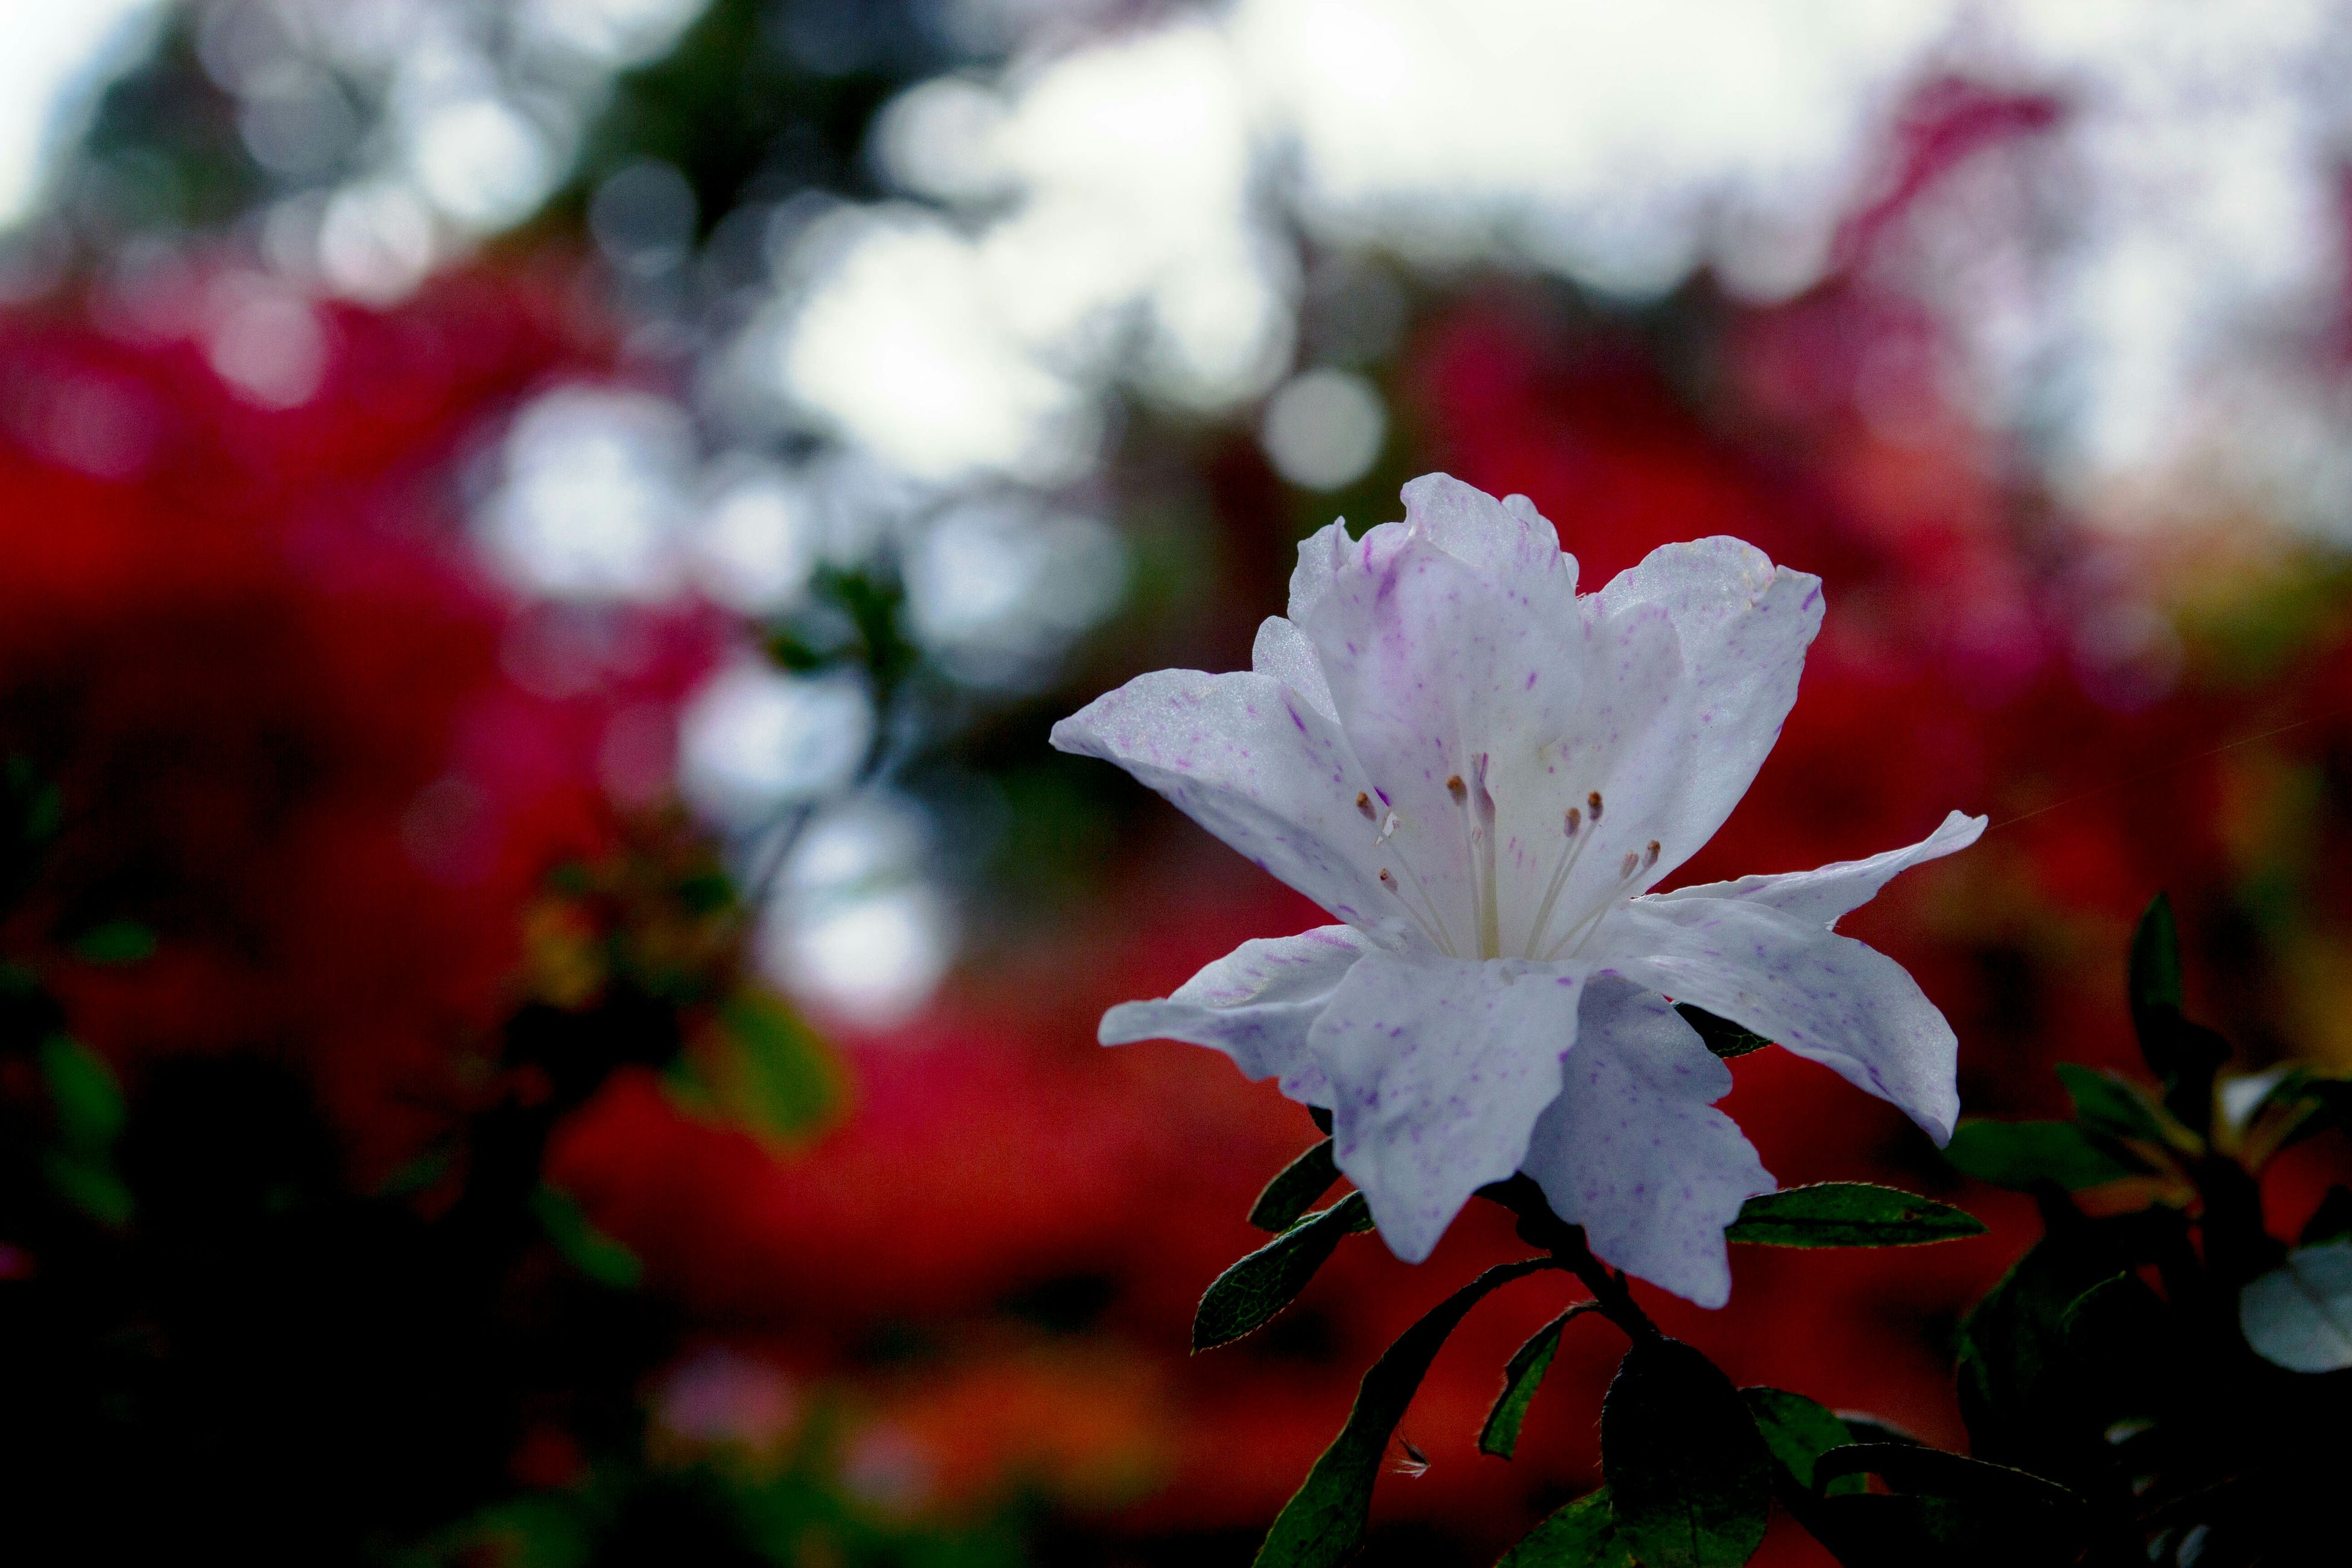 flower, petal, fragility, freshness, growth, flower head, close-up, focus on foreground, beauty in nature, nature, blooming, plant, single flower, in bloom, leaf, stamen, stem, season, outdoors, selective focus